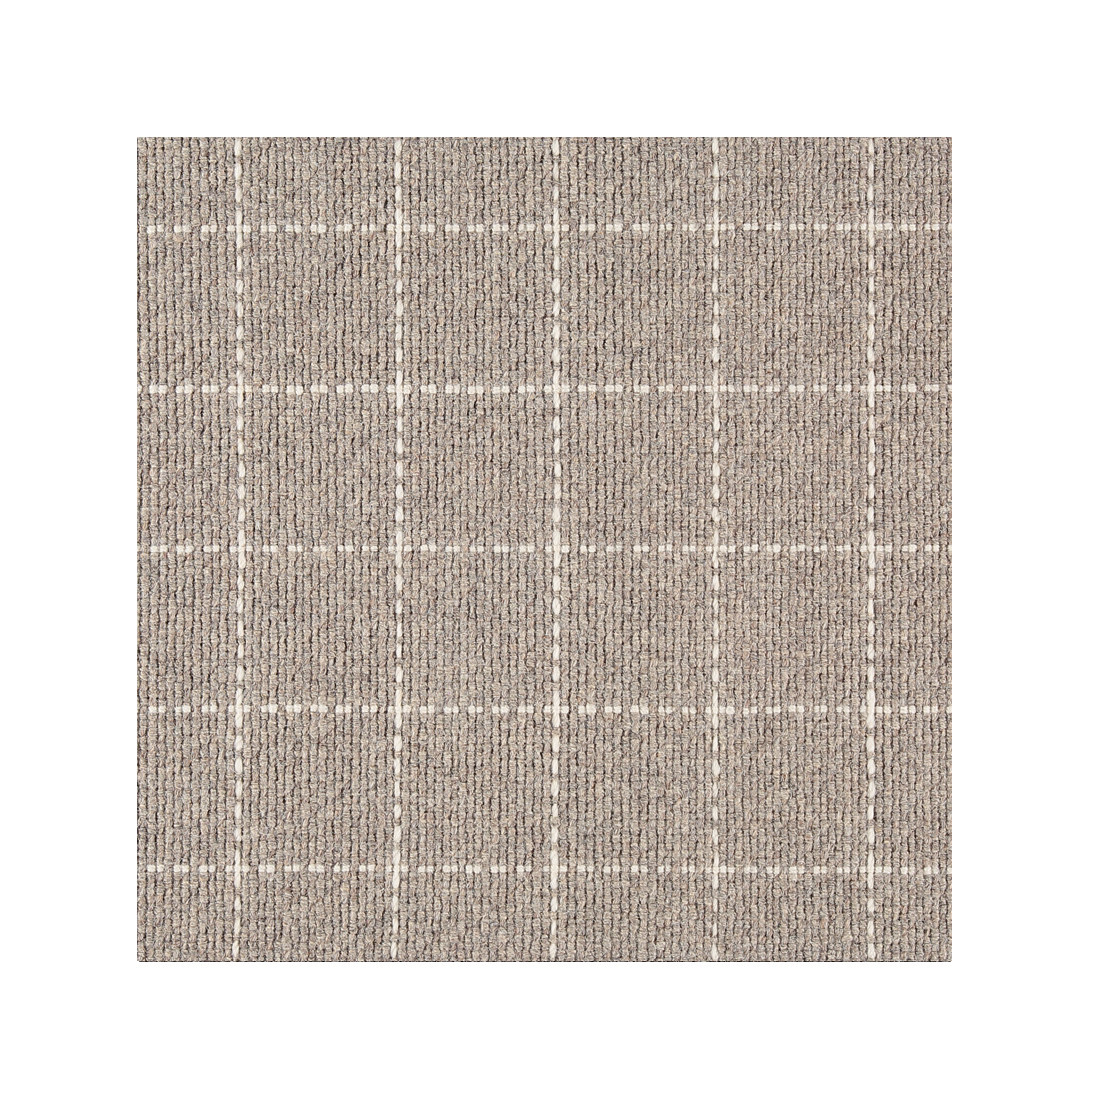 Library - 100% Woven Wool Hand Loomed - Pewter